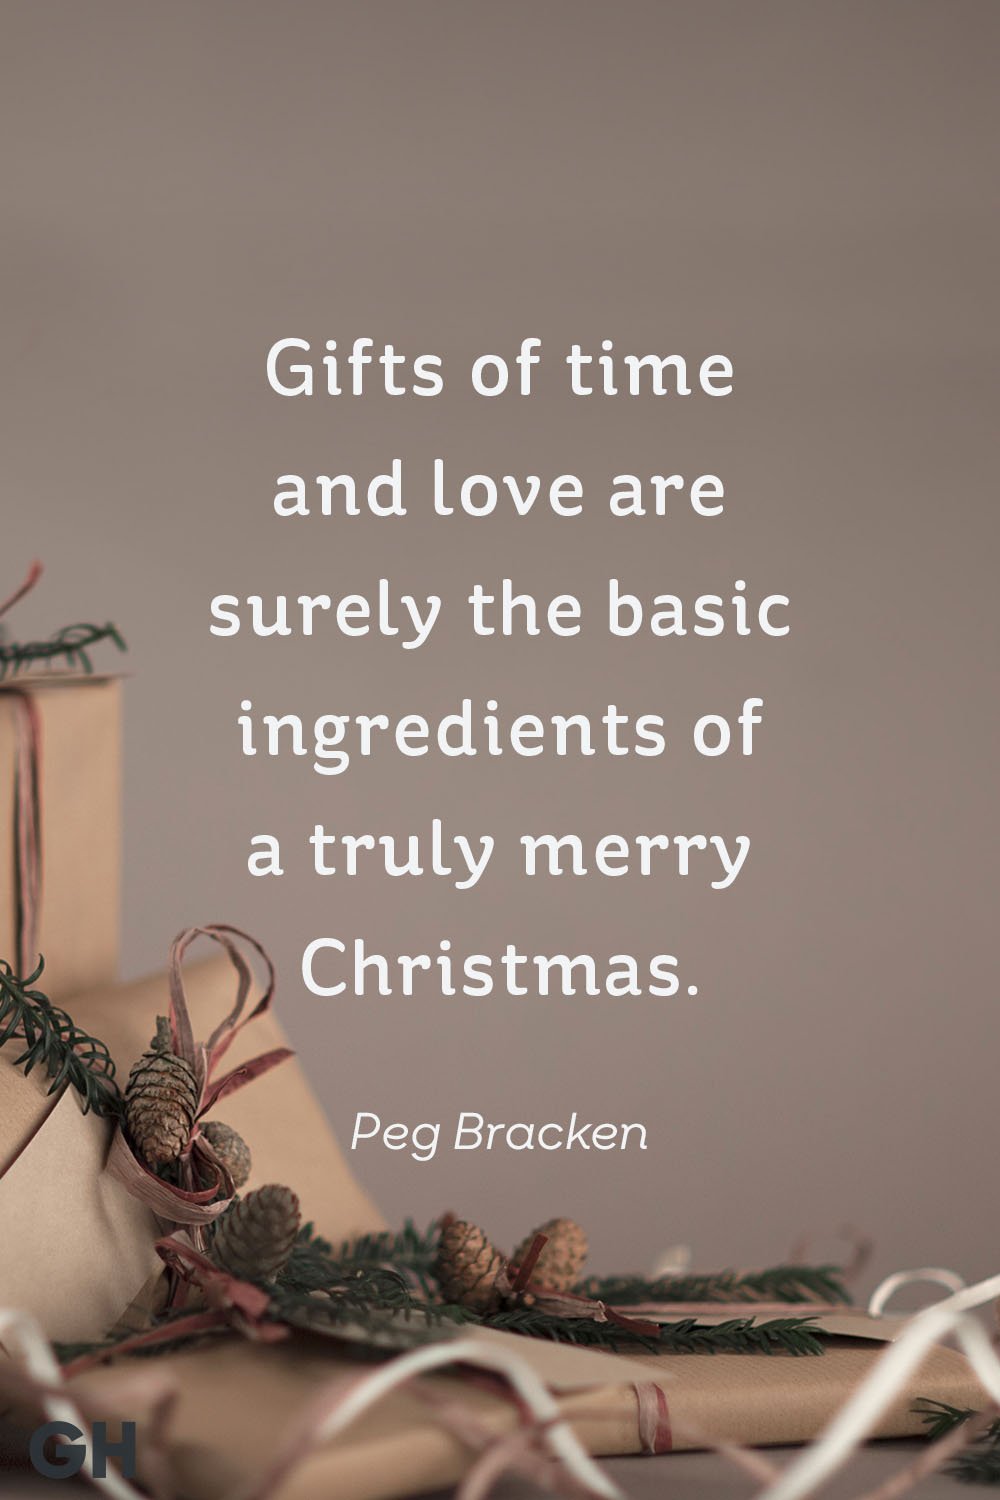 Famous Irish Quotes About Life 27 Best Christmas Quotes Of All Time  Festive Holiday Sayings